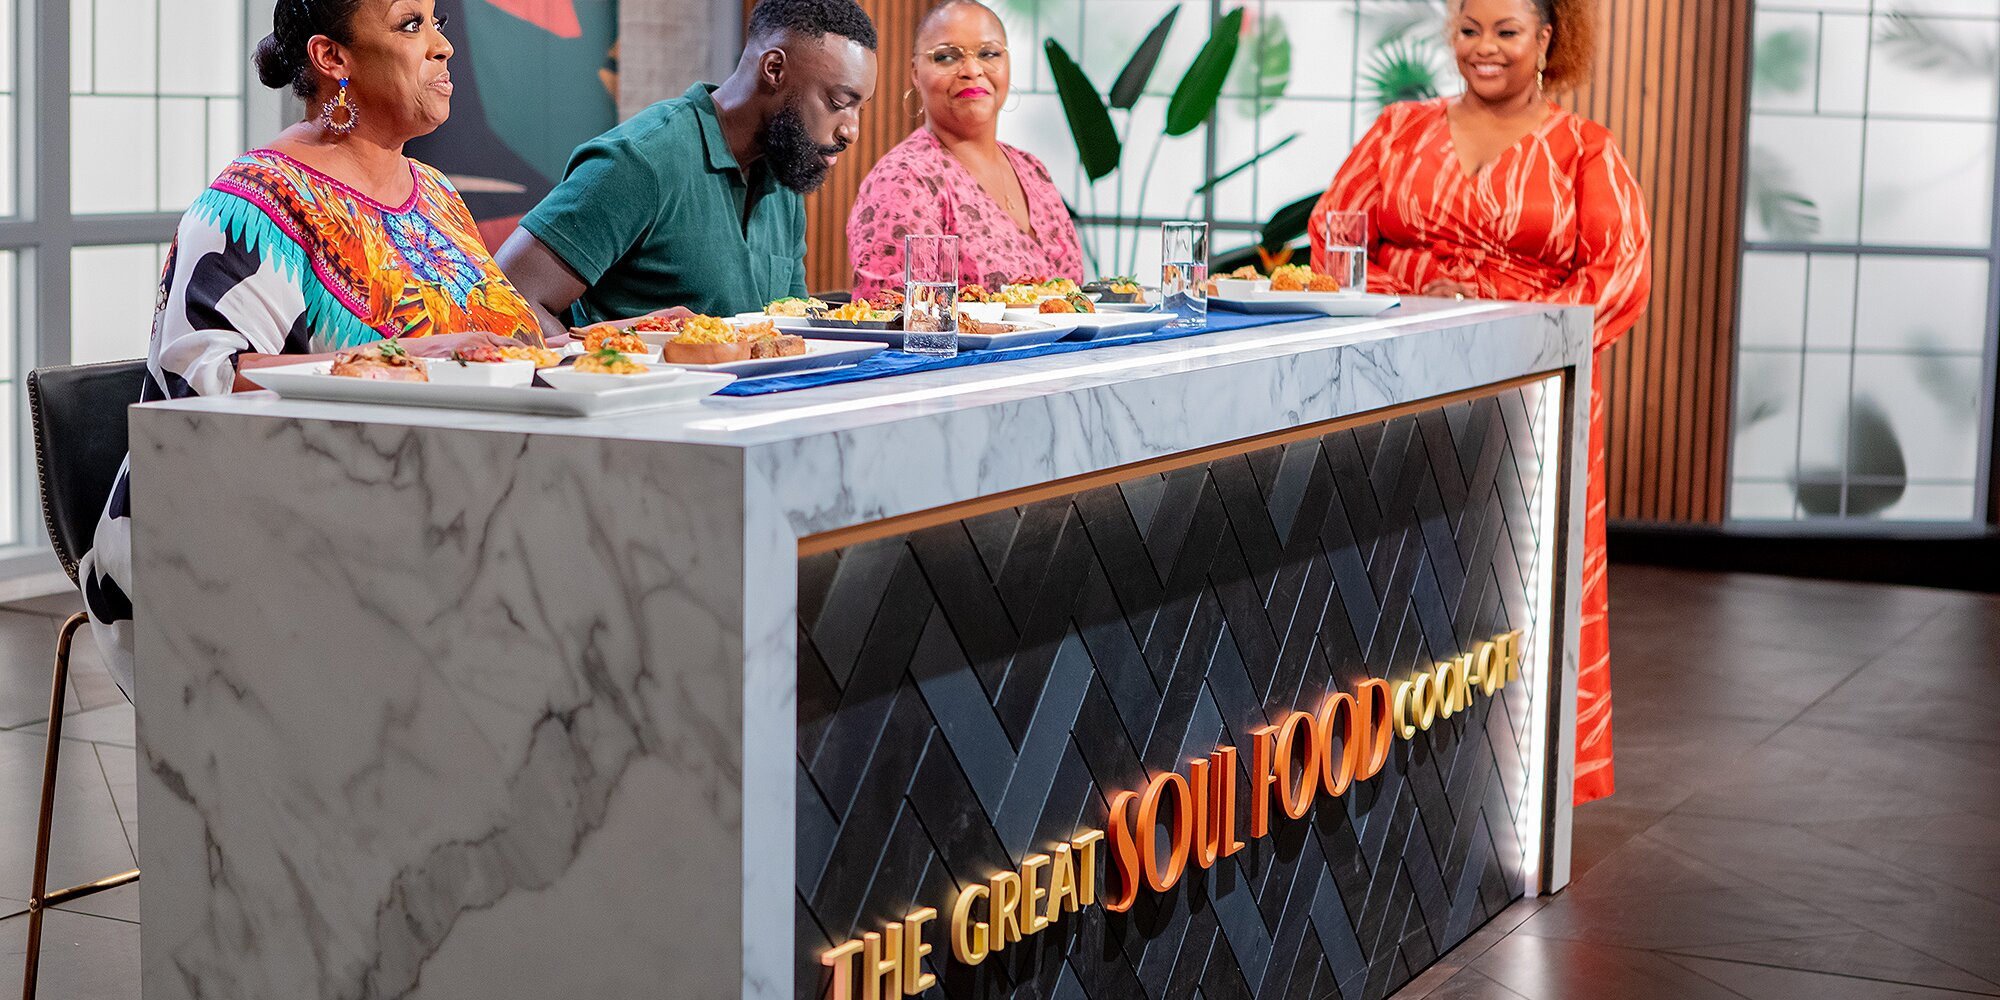 The Great Soul Food Cook-Off Celebrates Black Culture and Cuisine in New Competition Series